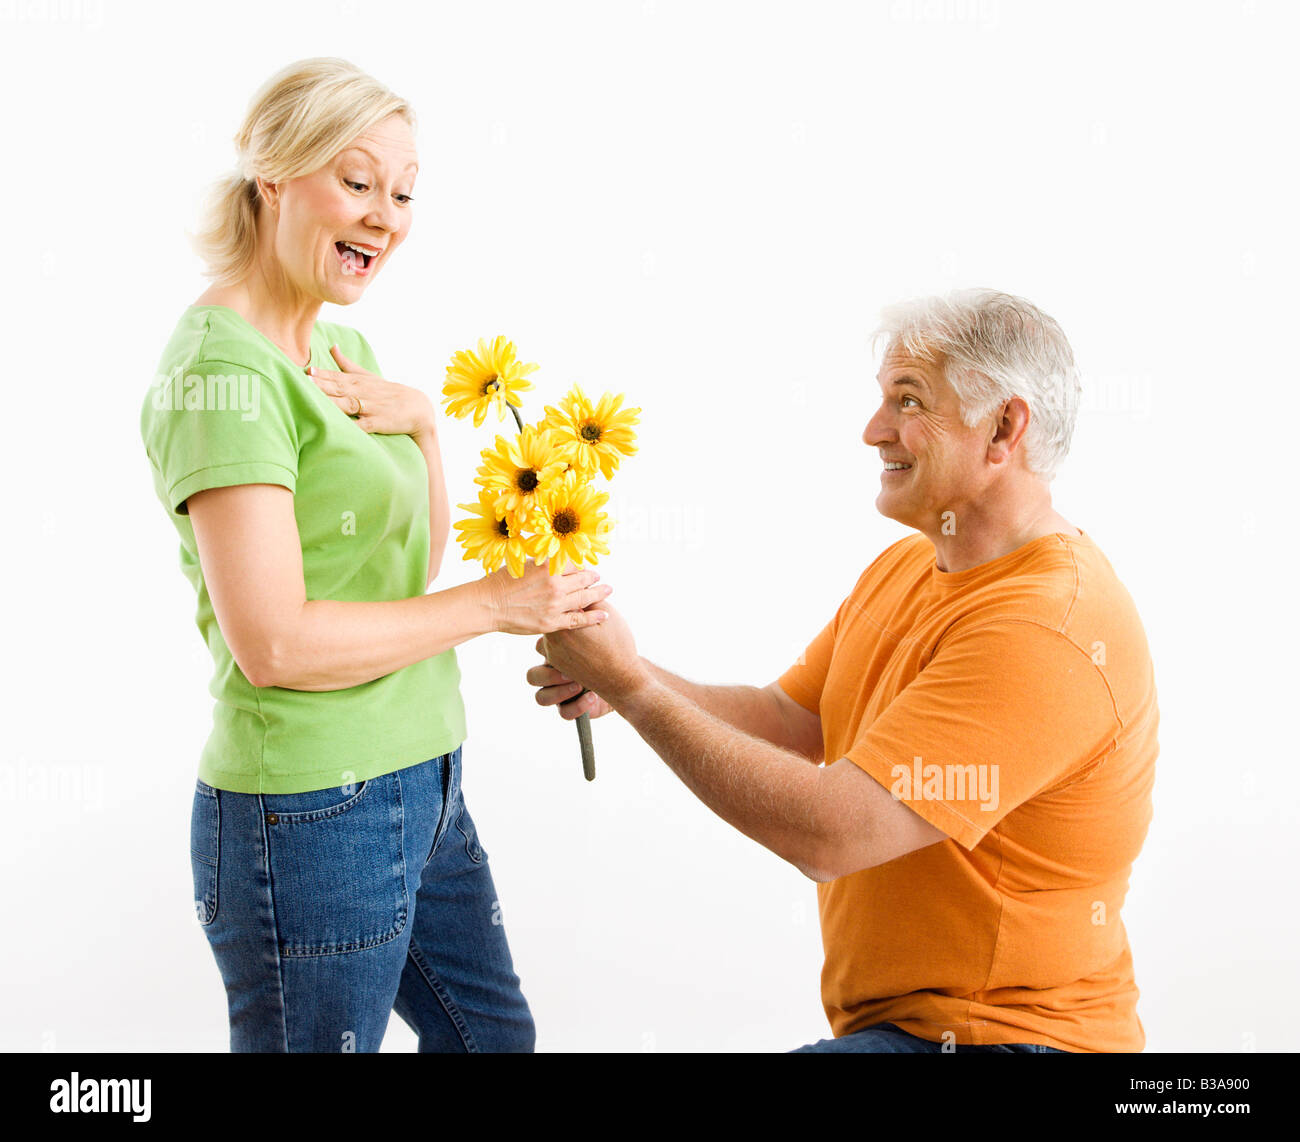 Middle aged man on bended knee giving woman bouquet of yellow flowers - Stock Image